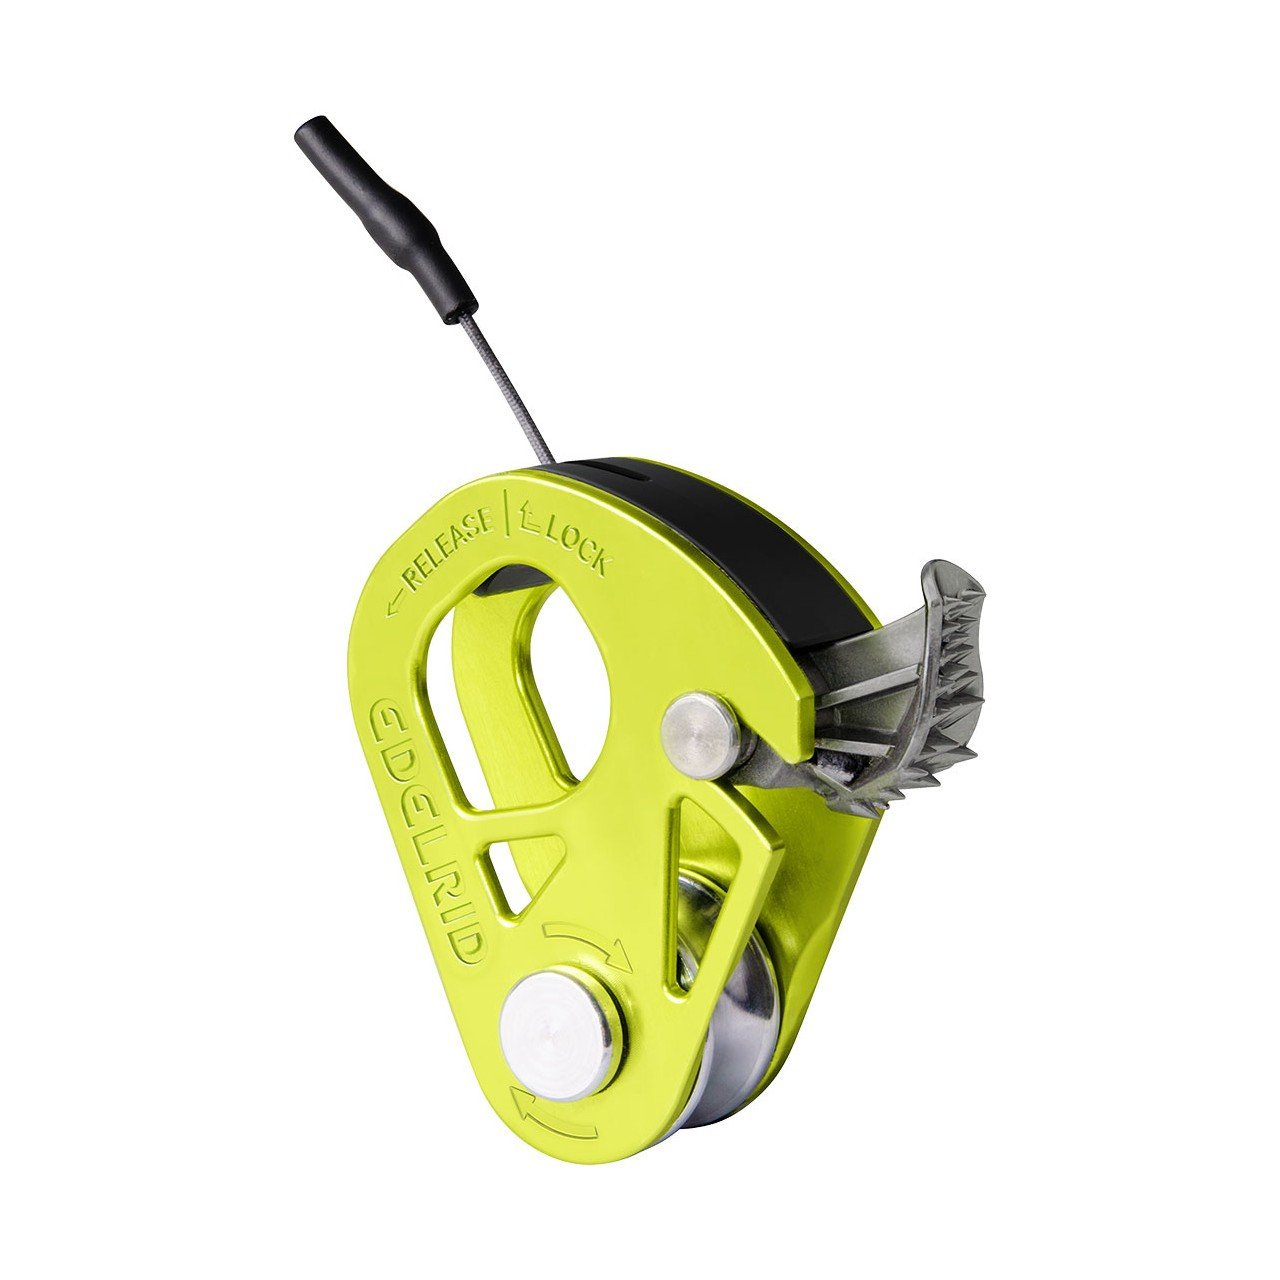 Edelrid Spoc pulley, front/side view in green colour